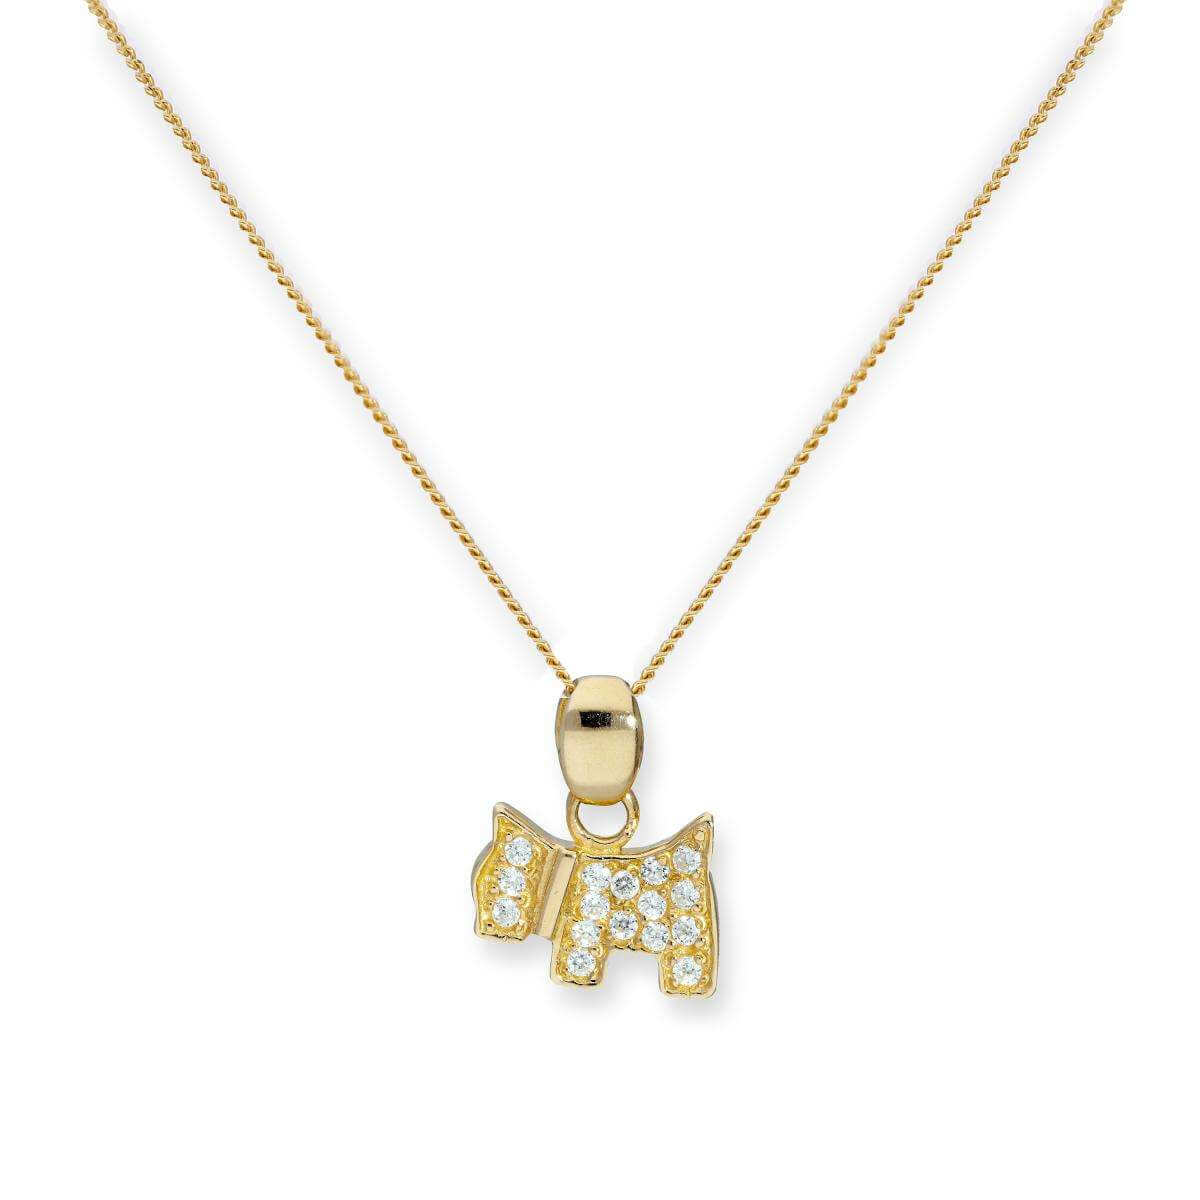 9ct Gold & Clear CZ Crystal Flat Scottie Dog Pendant Necklace 16 - 20 Inches